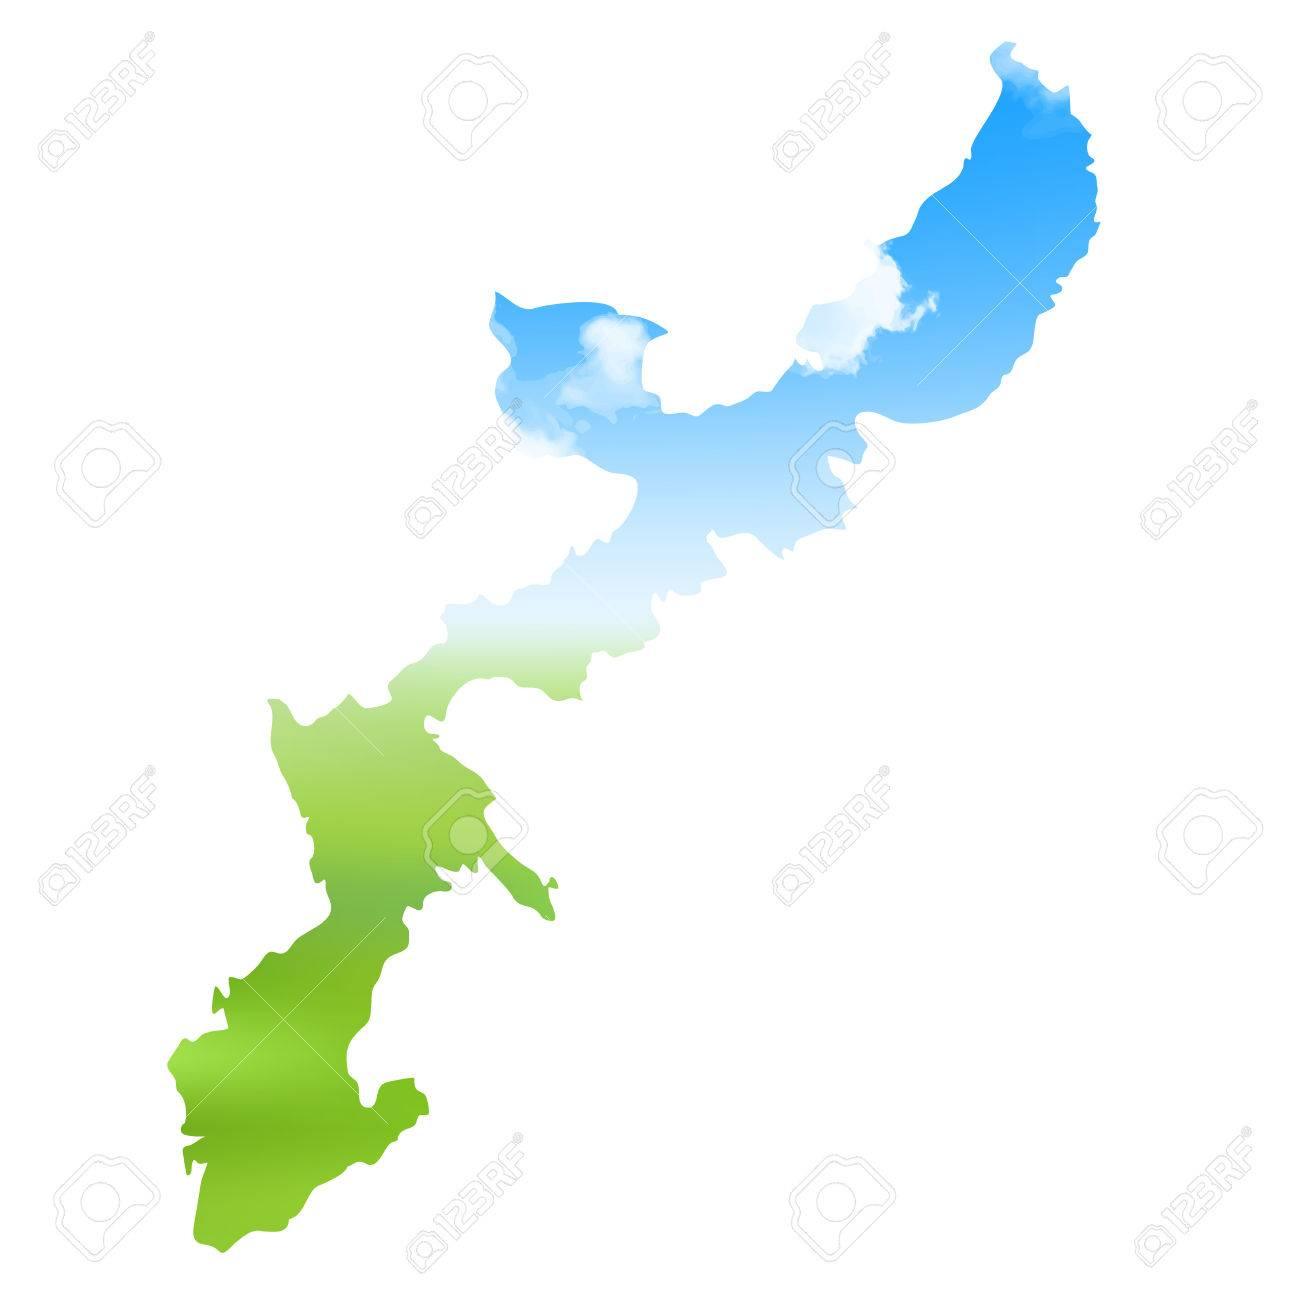 Okinawa map landscape icon royalty free cliparts vectors and stock okinawa map landscape icon stock vector 76355571 gumiabroncs Images